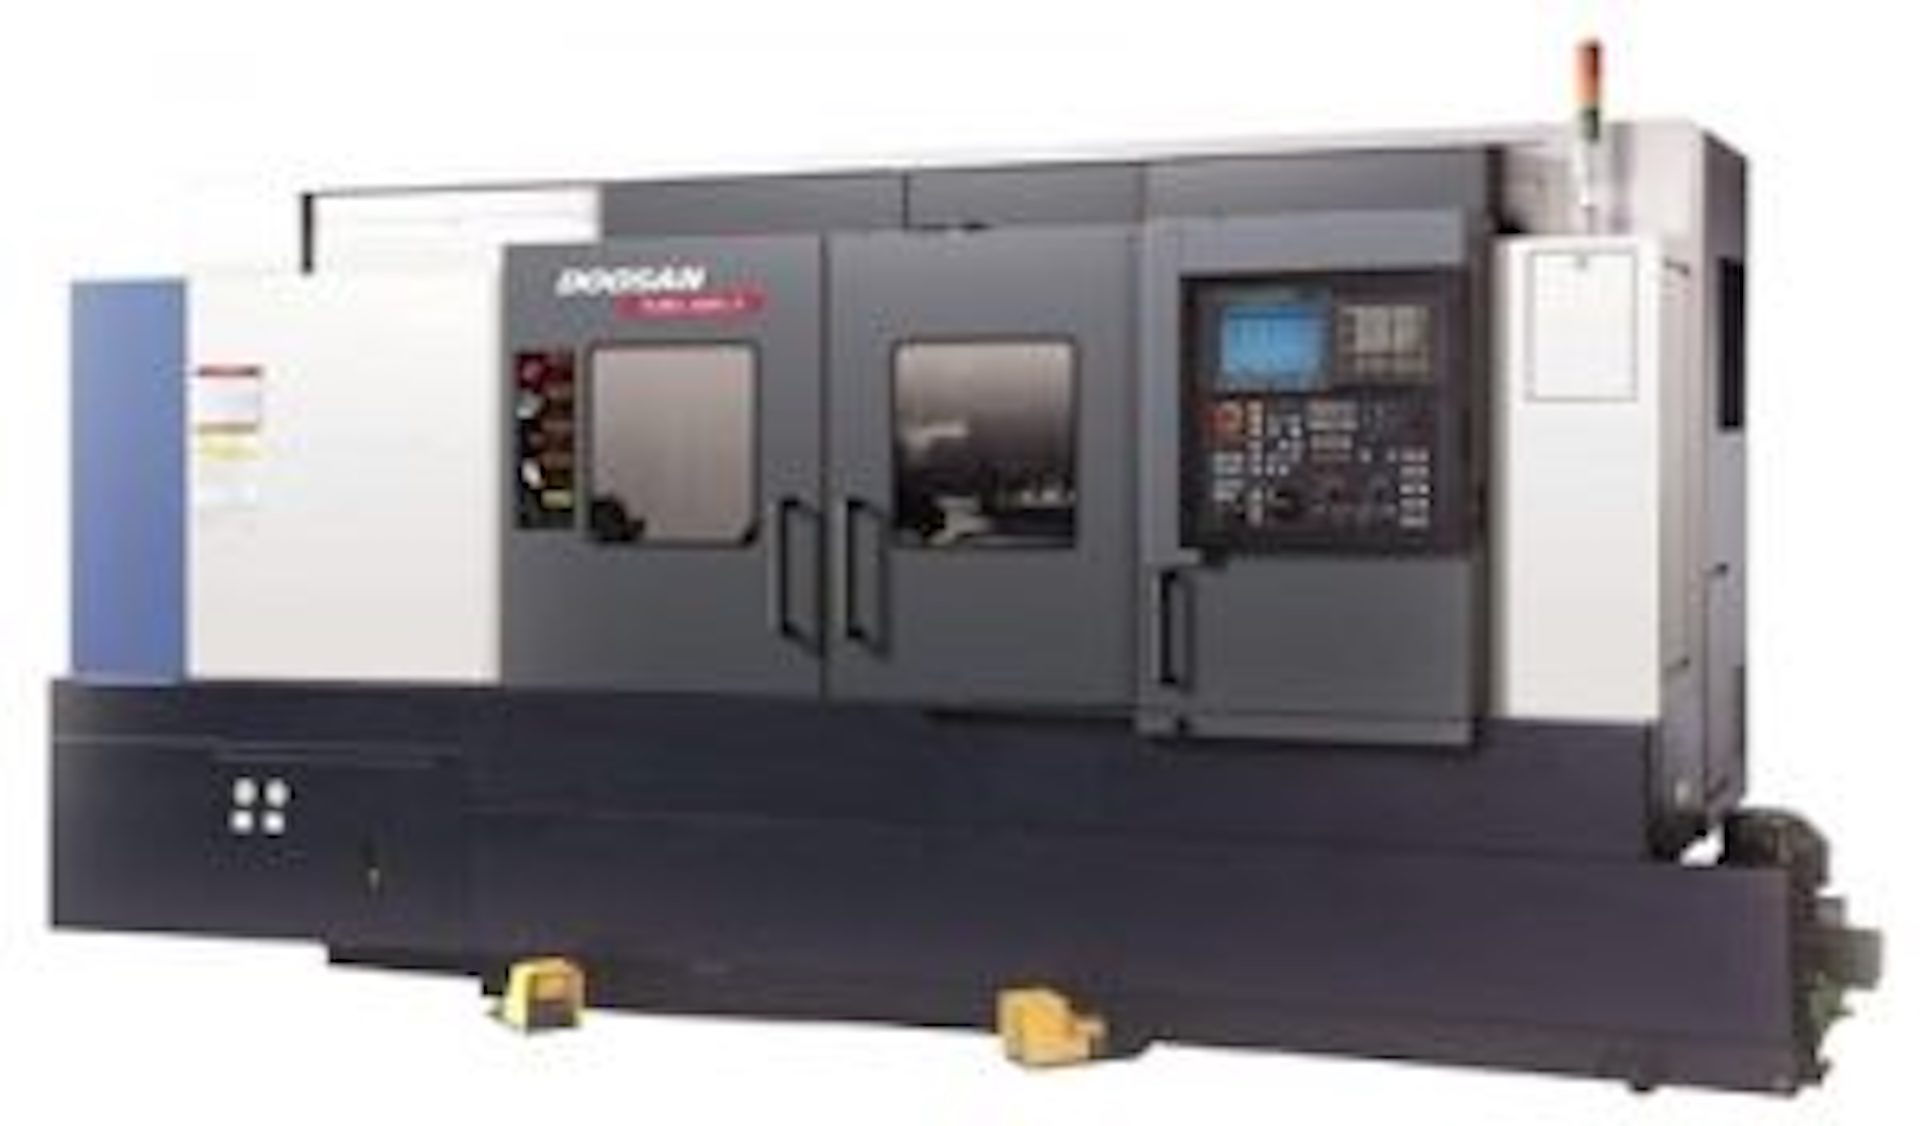 https://www.metalite.co.uk/wp-content/uploads/capabilities/turning/Doosan-3100L.jpg